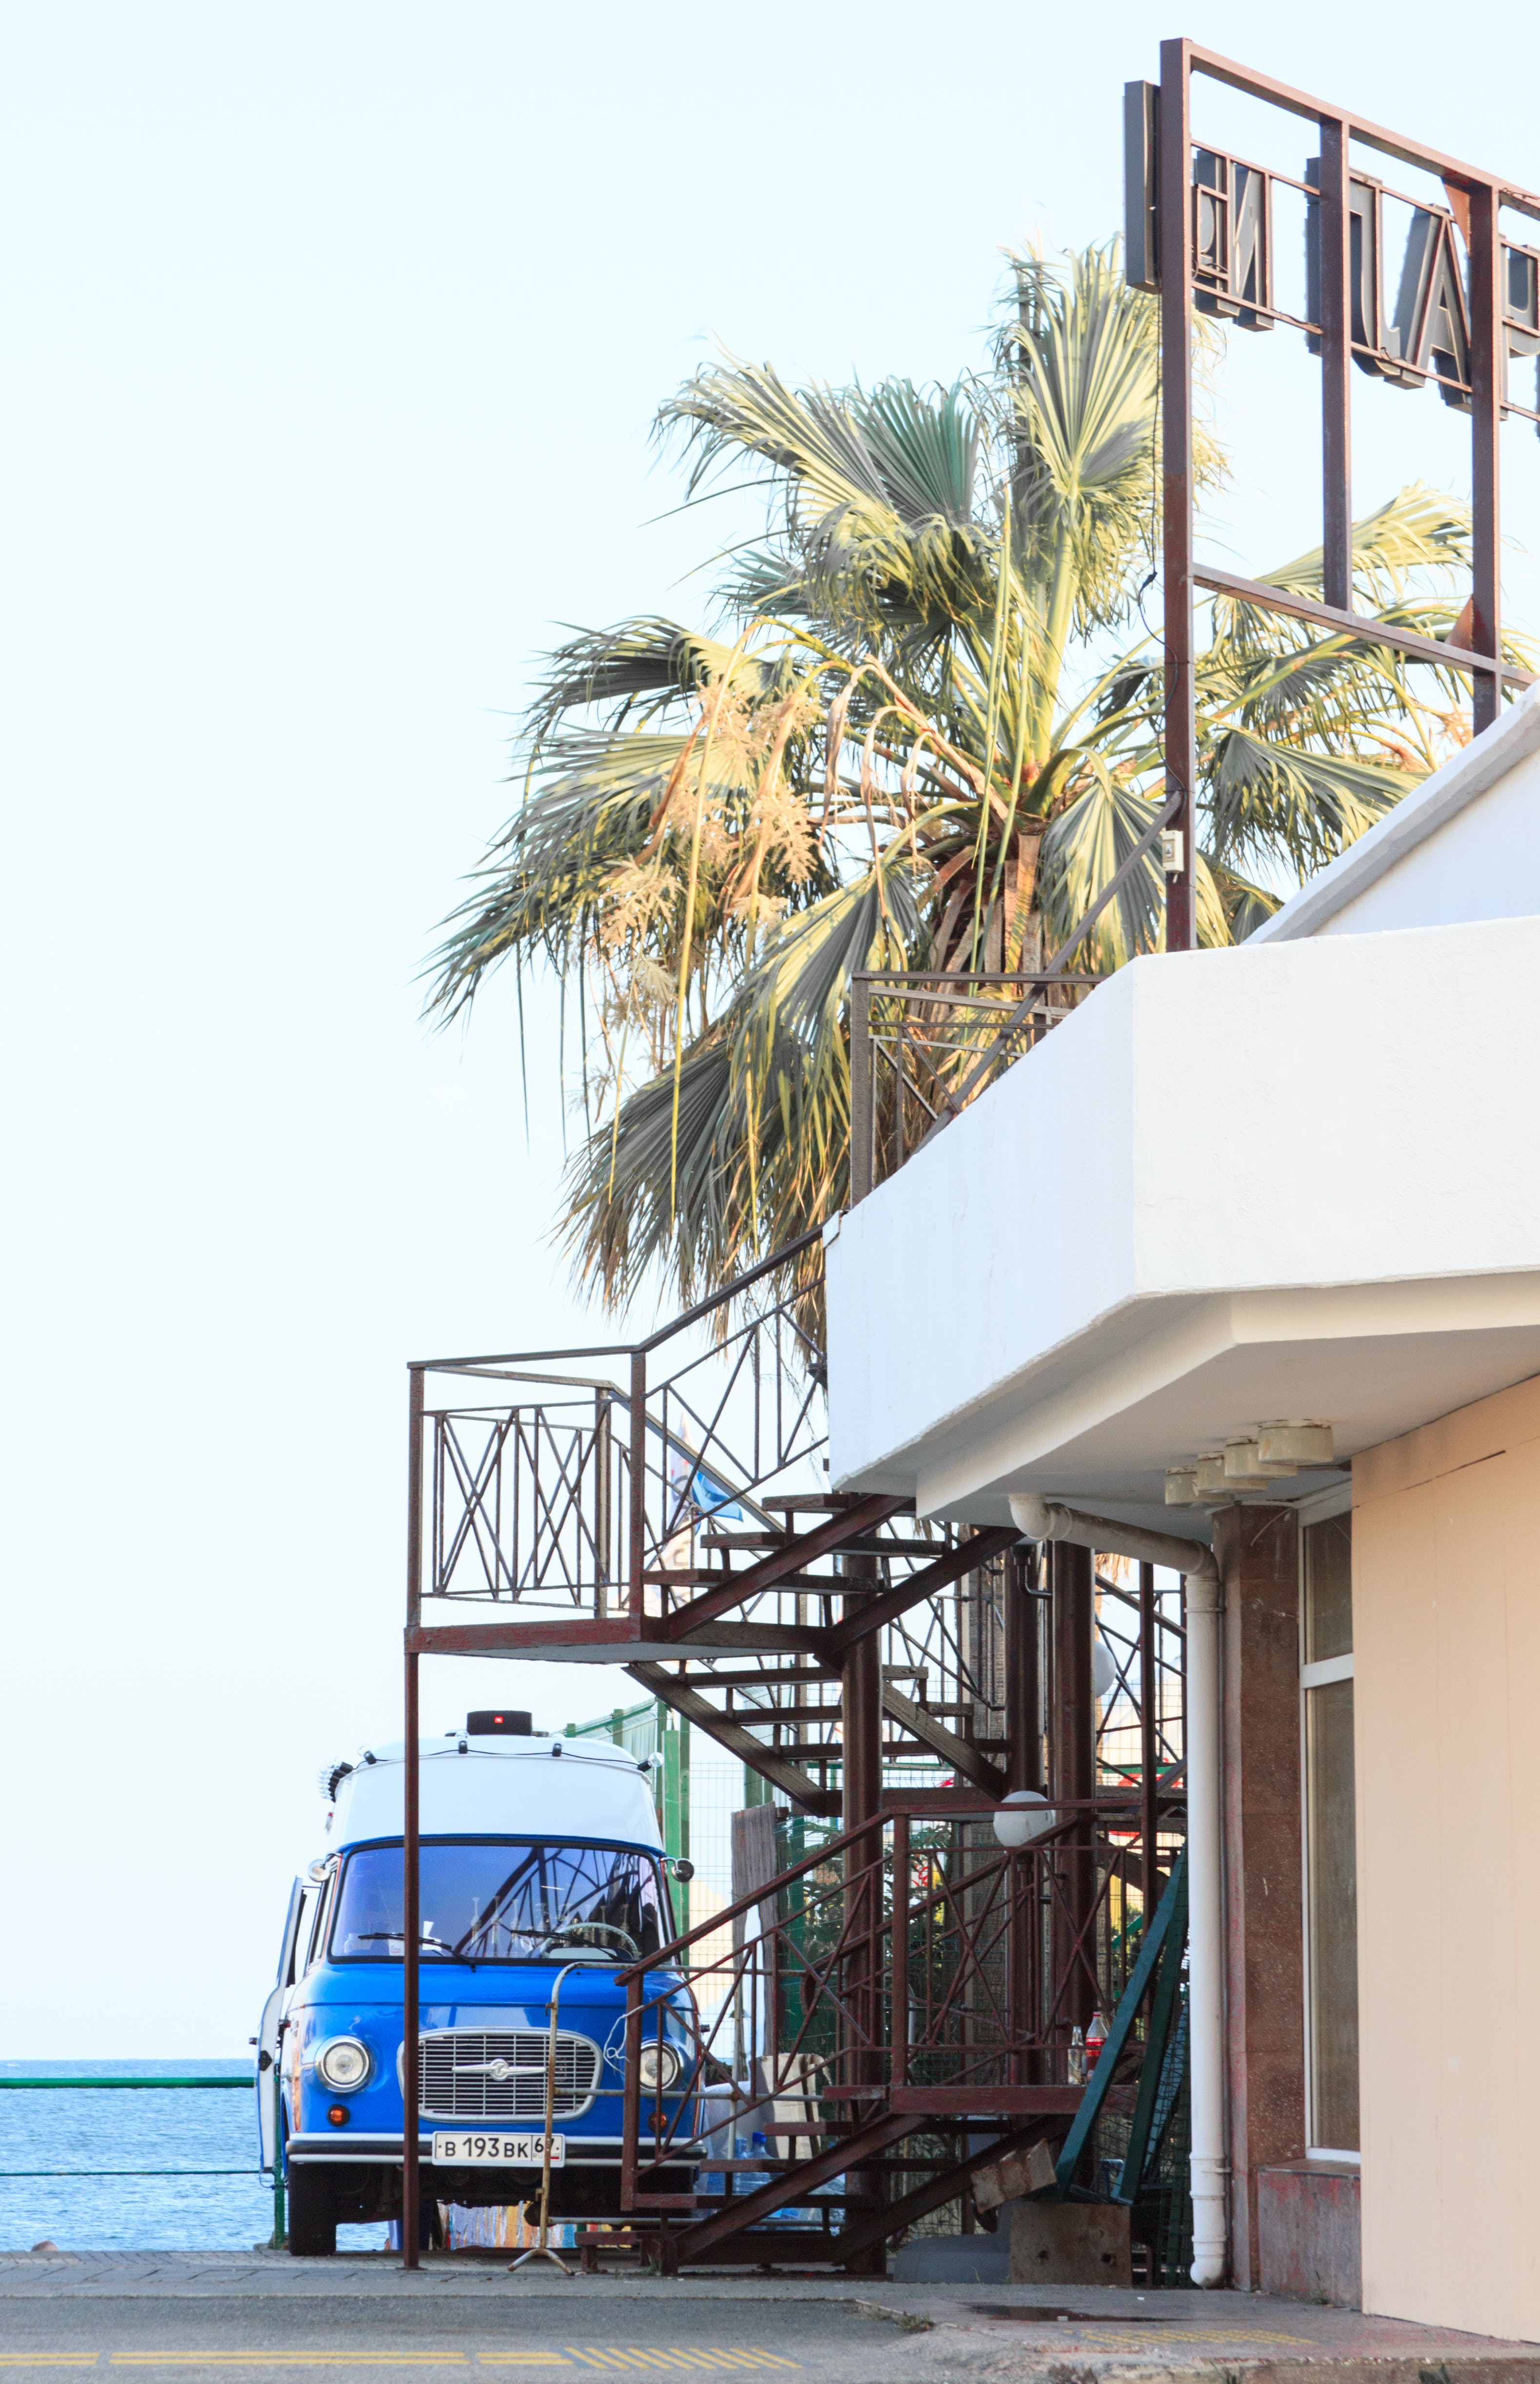 Blue Vehicle Park Near Brown Metal Outdoor Stairs and White Concrete House at Daytime